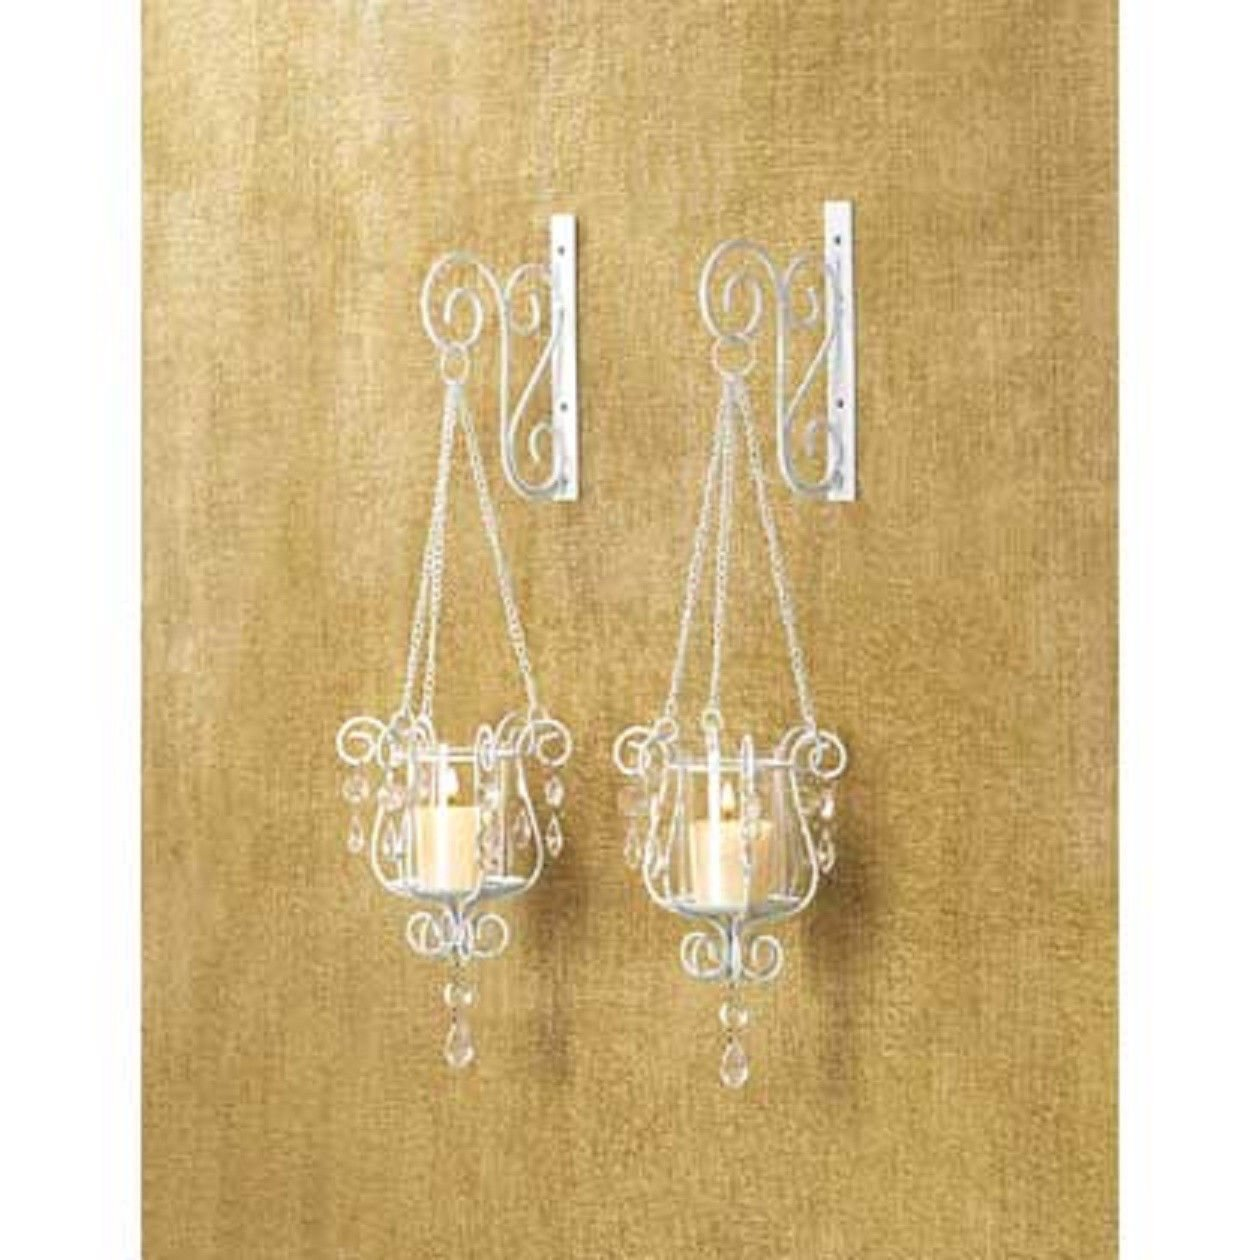 Shop amazon candle sconces 2 white chic shabby hurricane crystal hanging candle holder wall sconce pair set amipublicfo Gallery